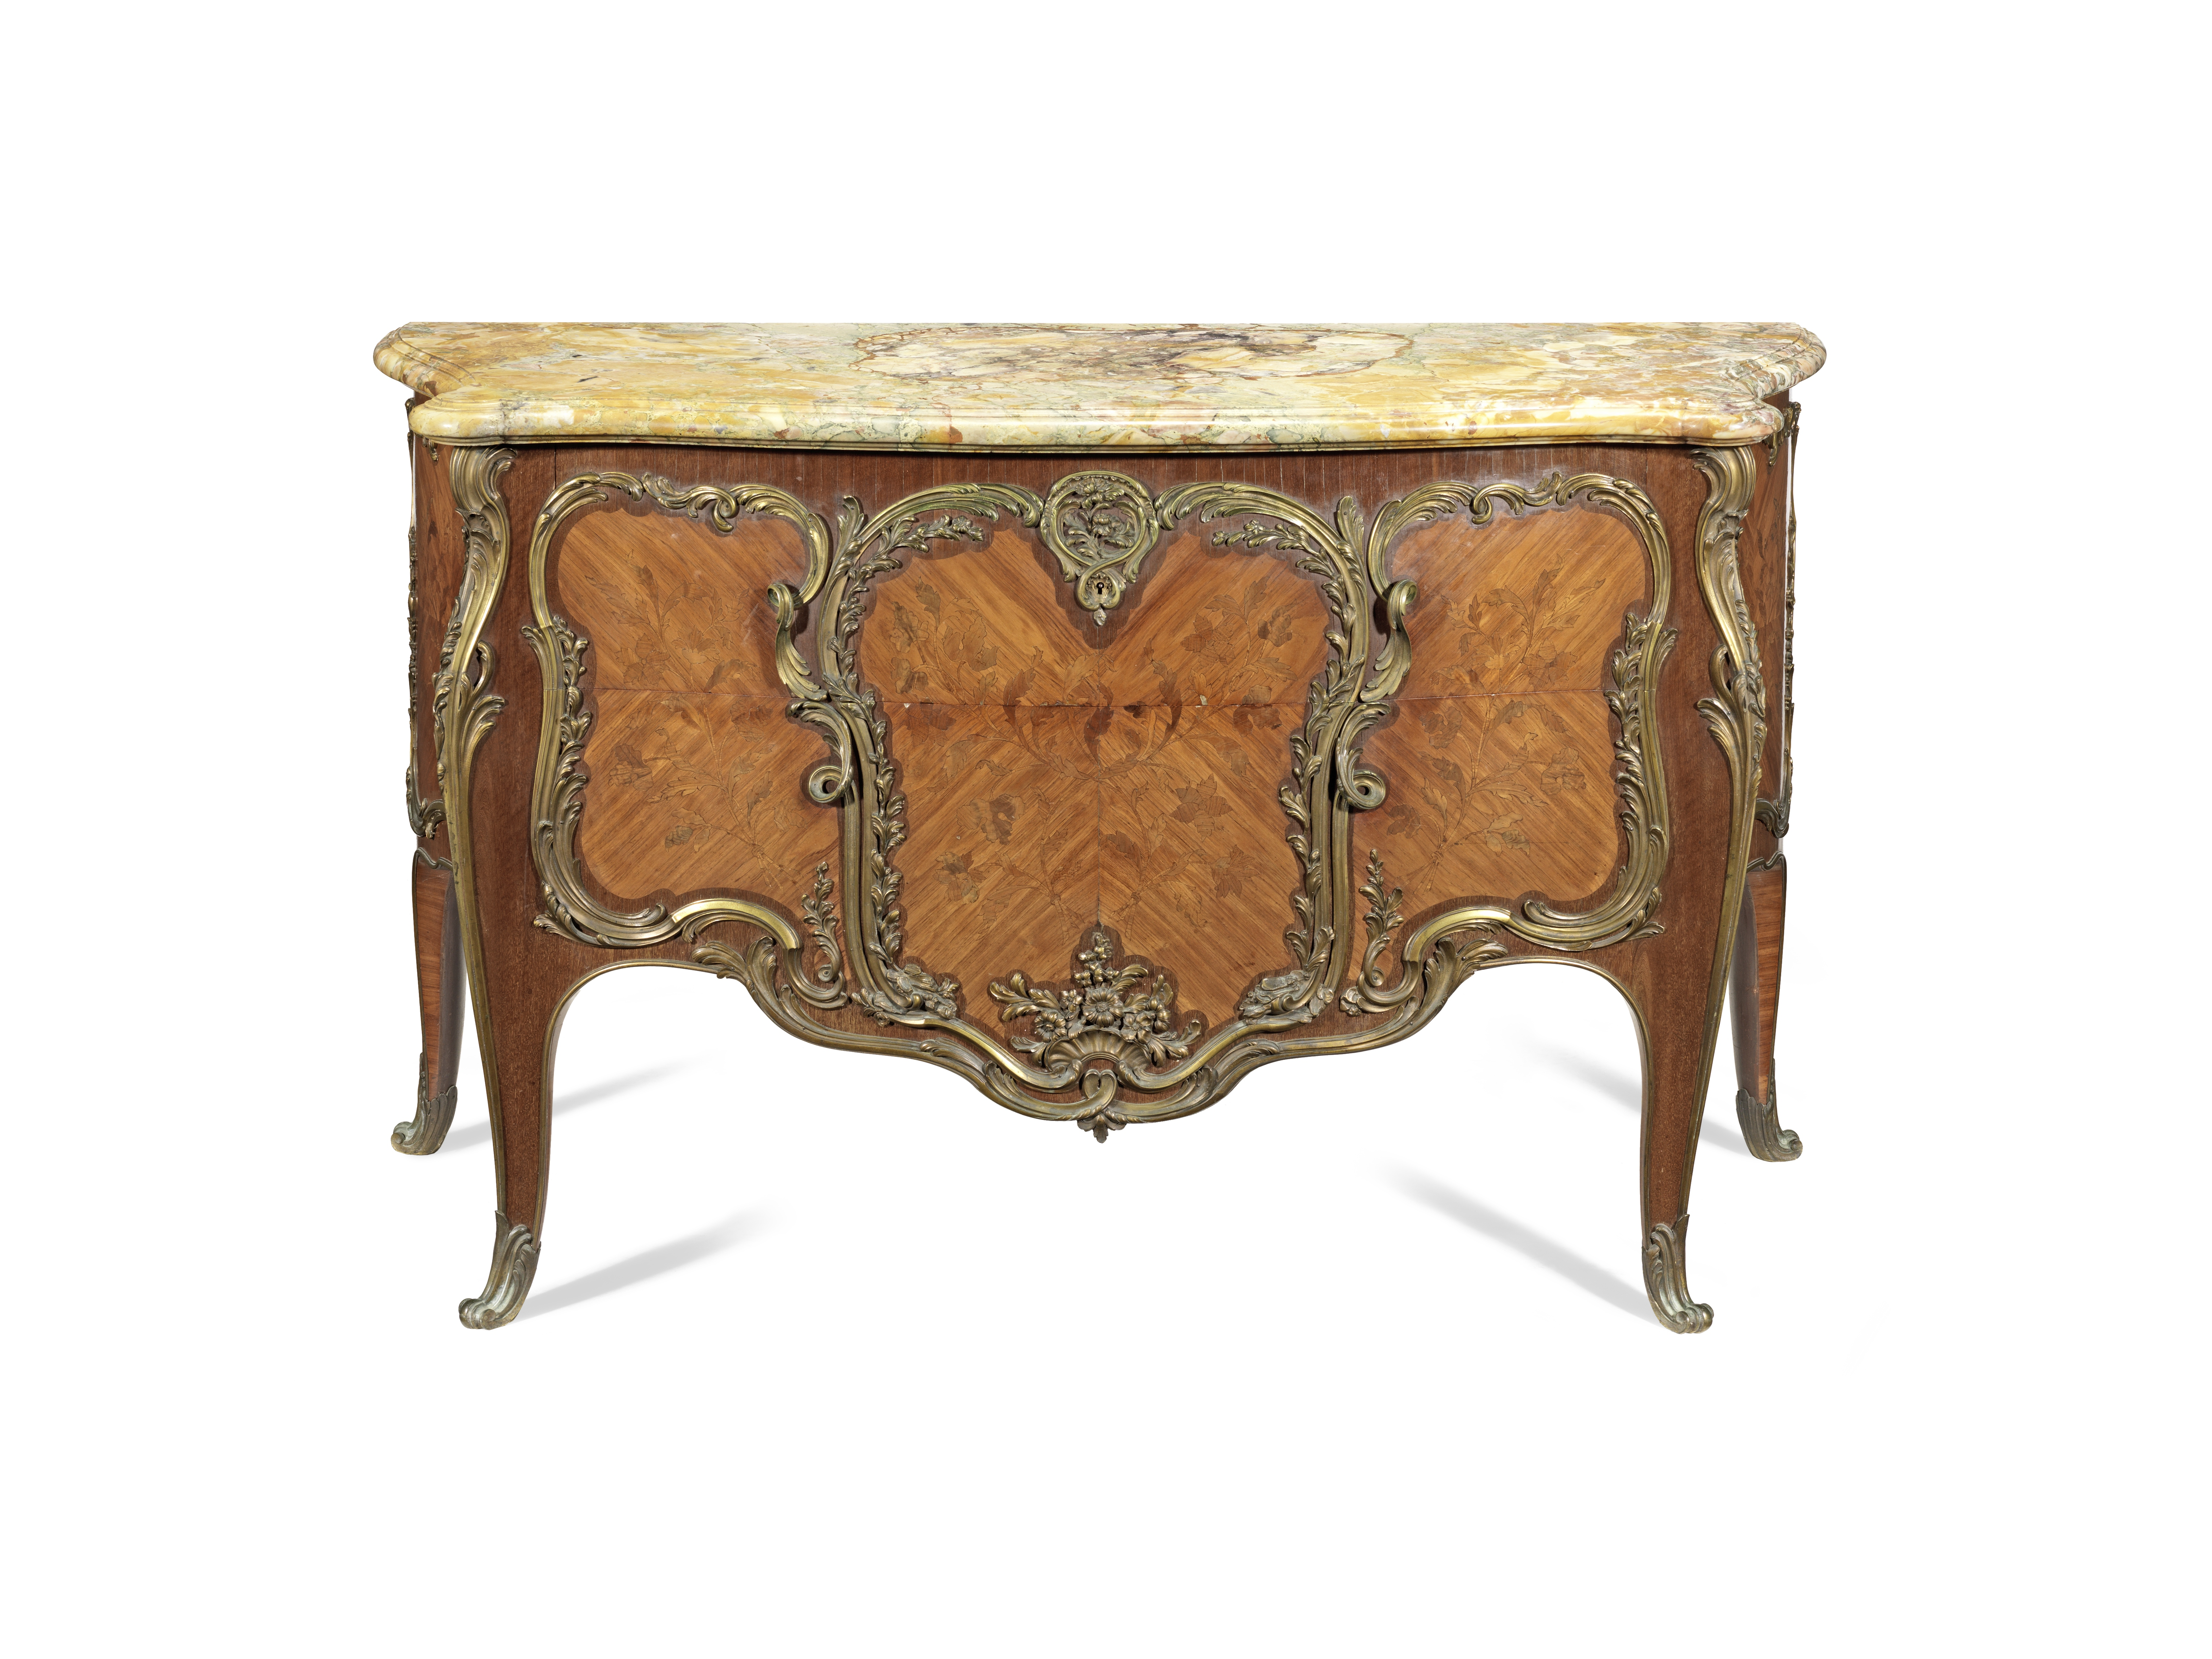 A French late 19th century ormolu mounted tulipwood, amaranth and 'bois de bout' (end-cut) marque...